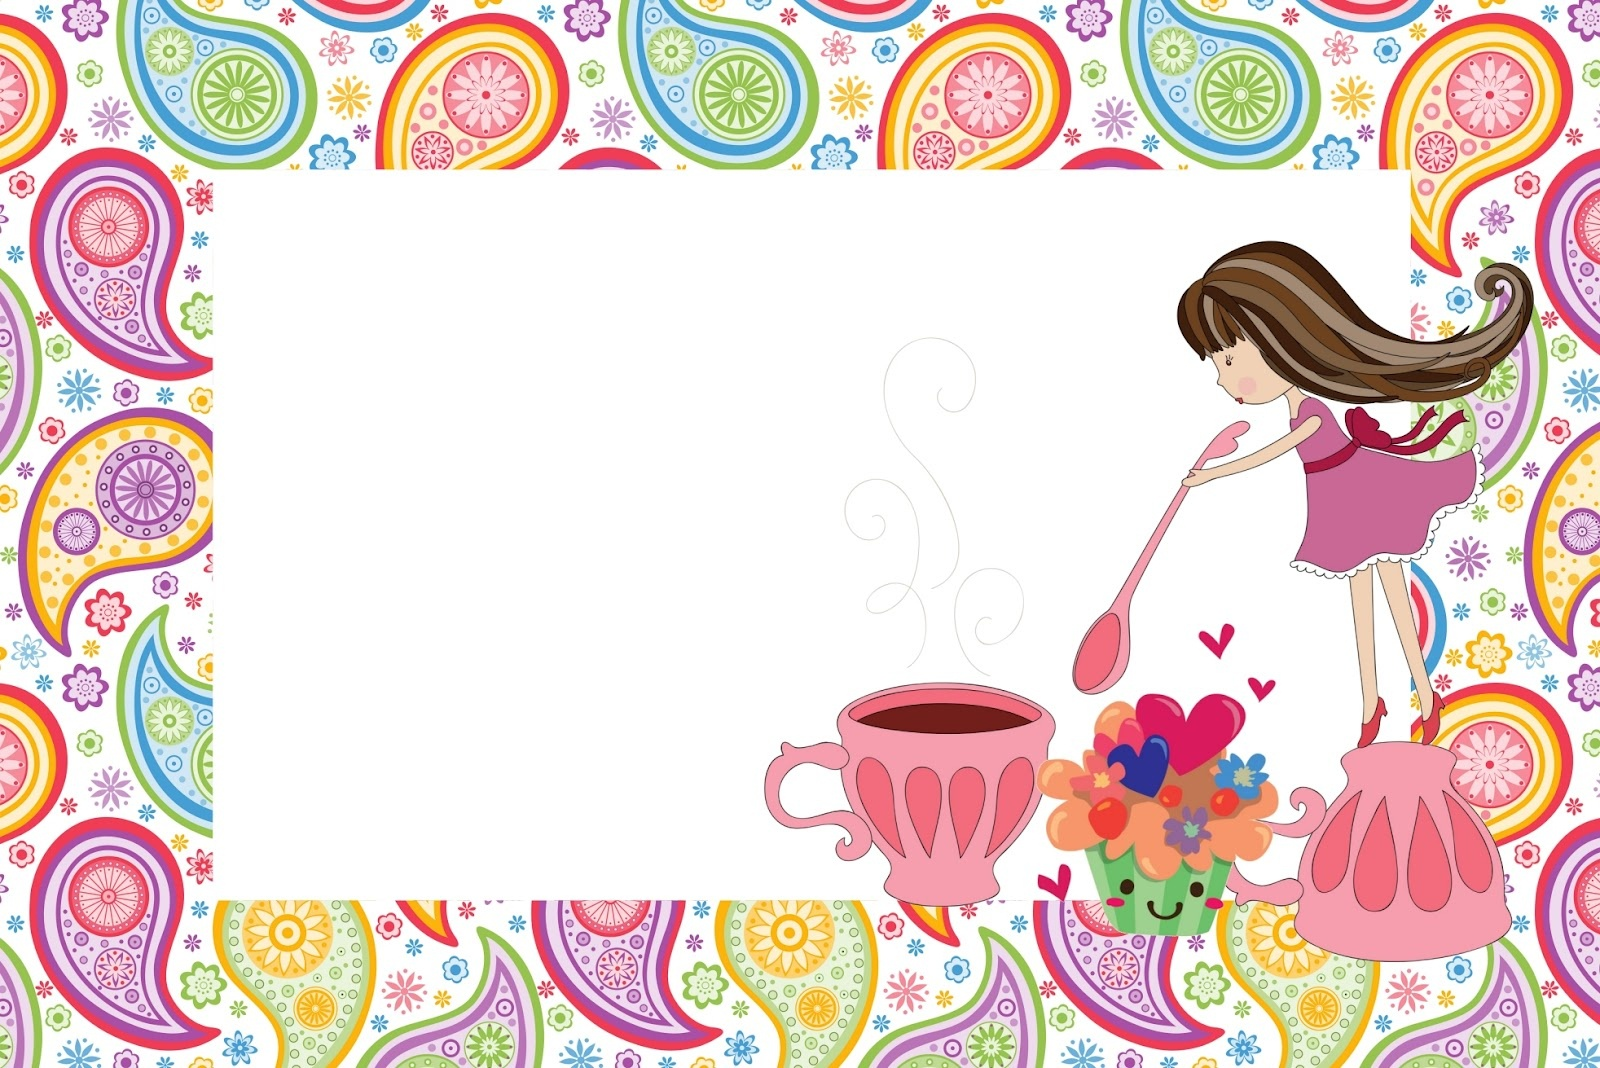 Girls Tea Party: Free Printable Invitations.   Oh My Fiesta For Ladies! - Free Tea Party Printables